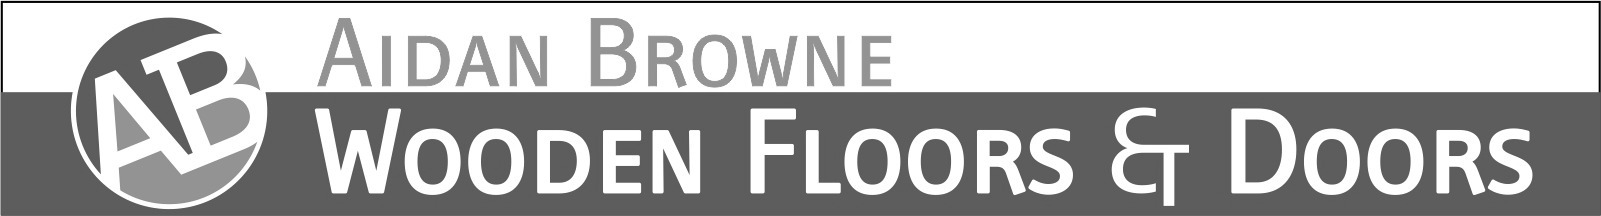 A. Browne Wooden Floors & Doors Logo